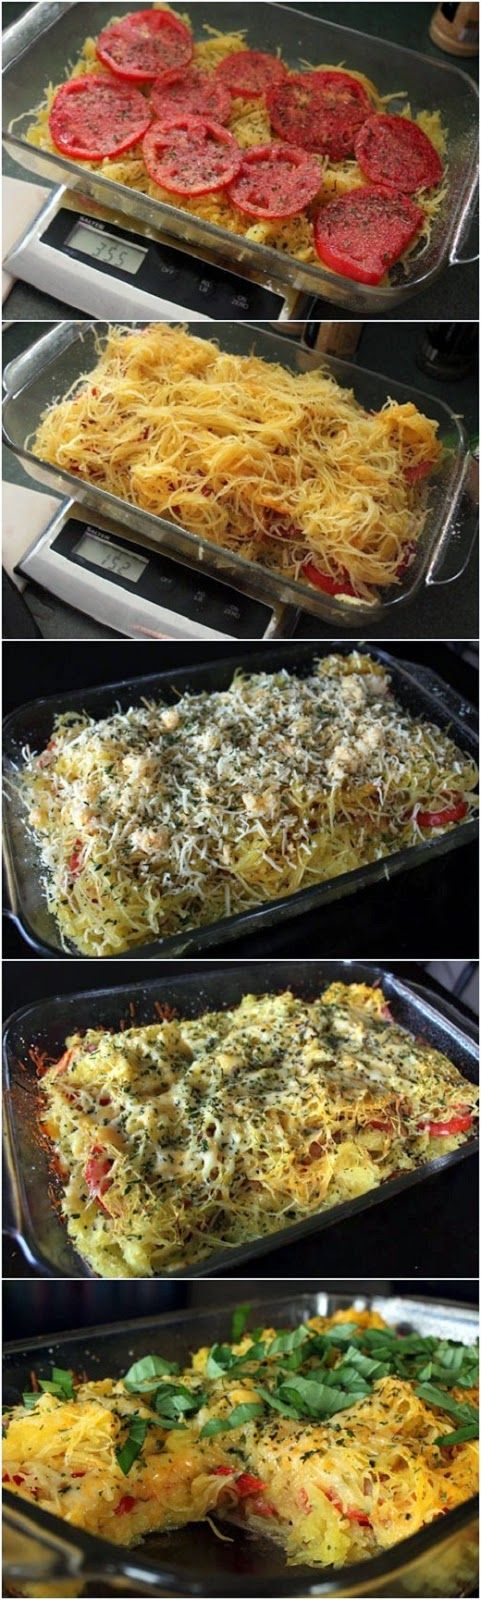 Tomato Basil Spaghetti Squash Bake Ingredients About 3 cups cooked spaghetti squash 2 large garden tomatoes...